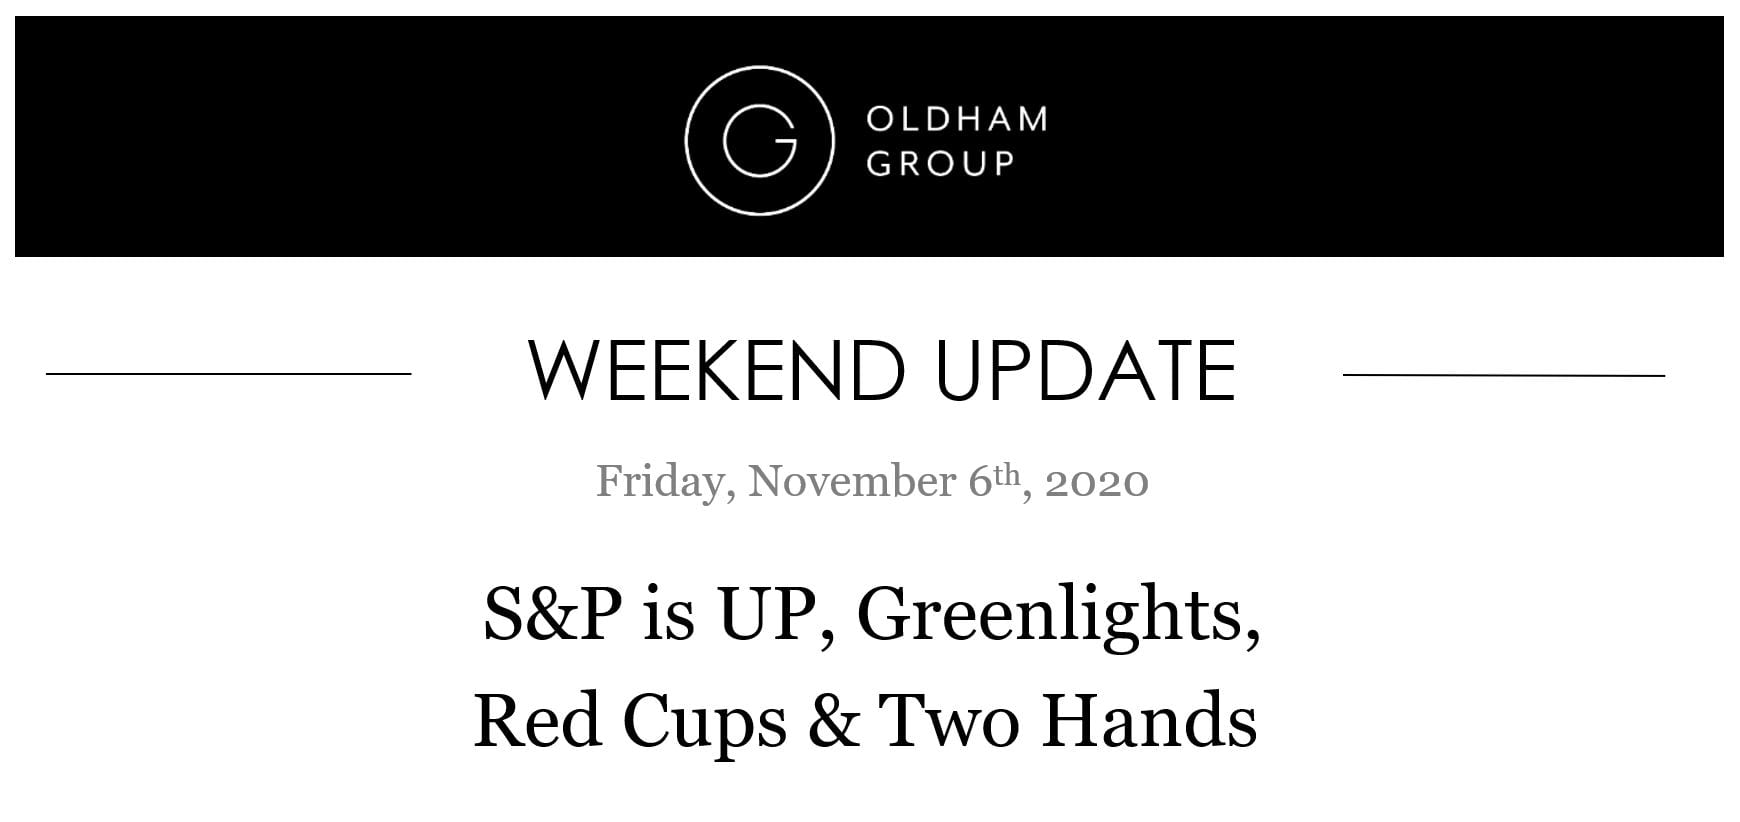 The Oldham Group | Updates November 9, 2020